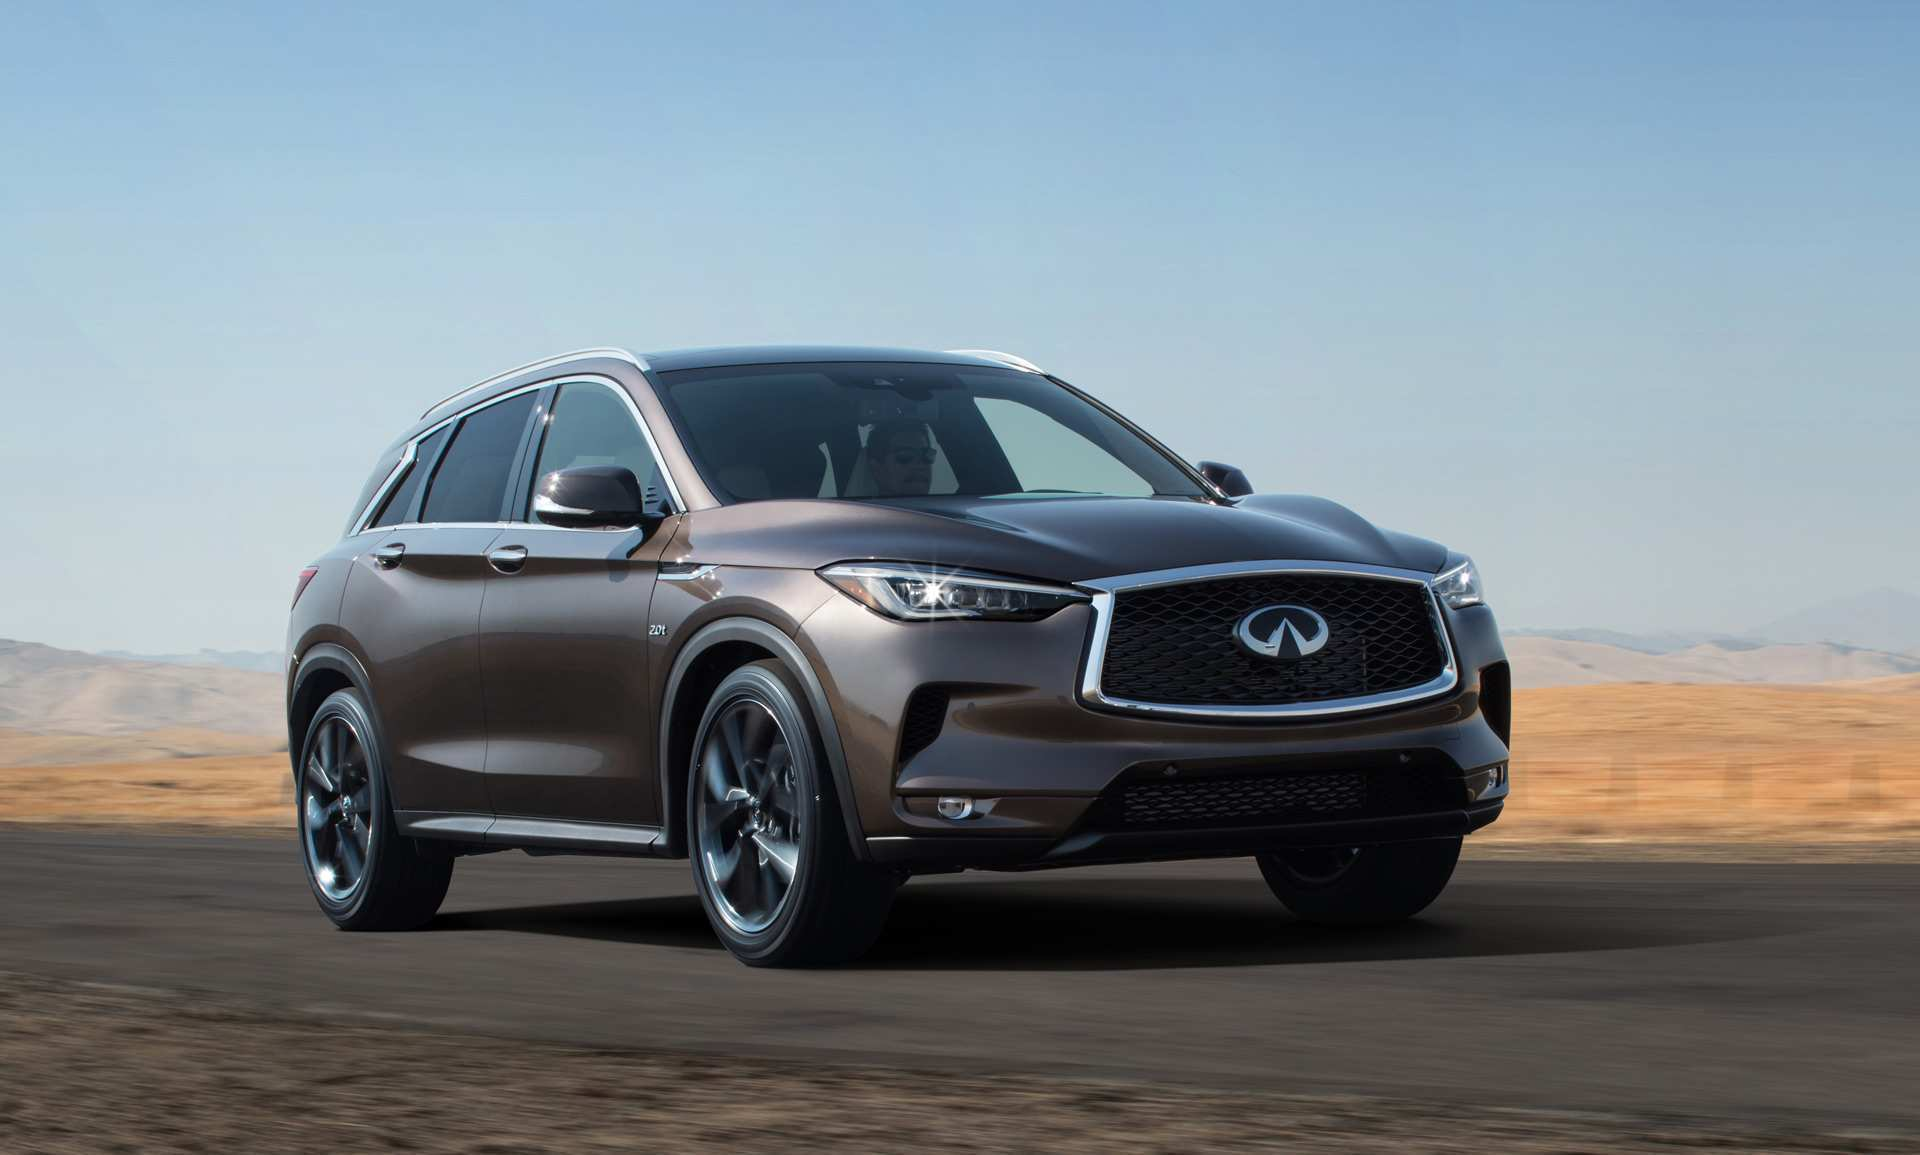 20 Great The Infiniti Qx50 2019 Hybrid Concept Images with The Infiniti Qx50 2019 Hybrid Concept